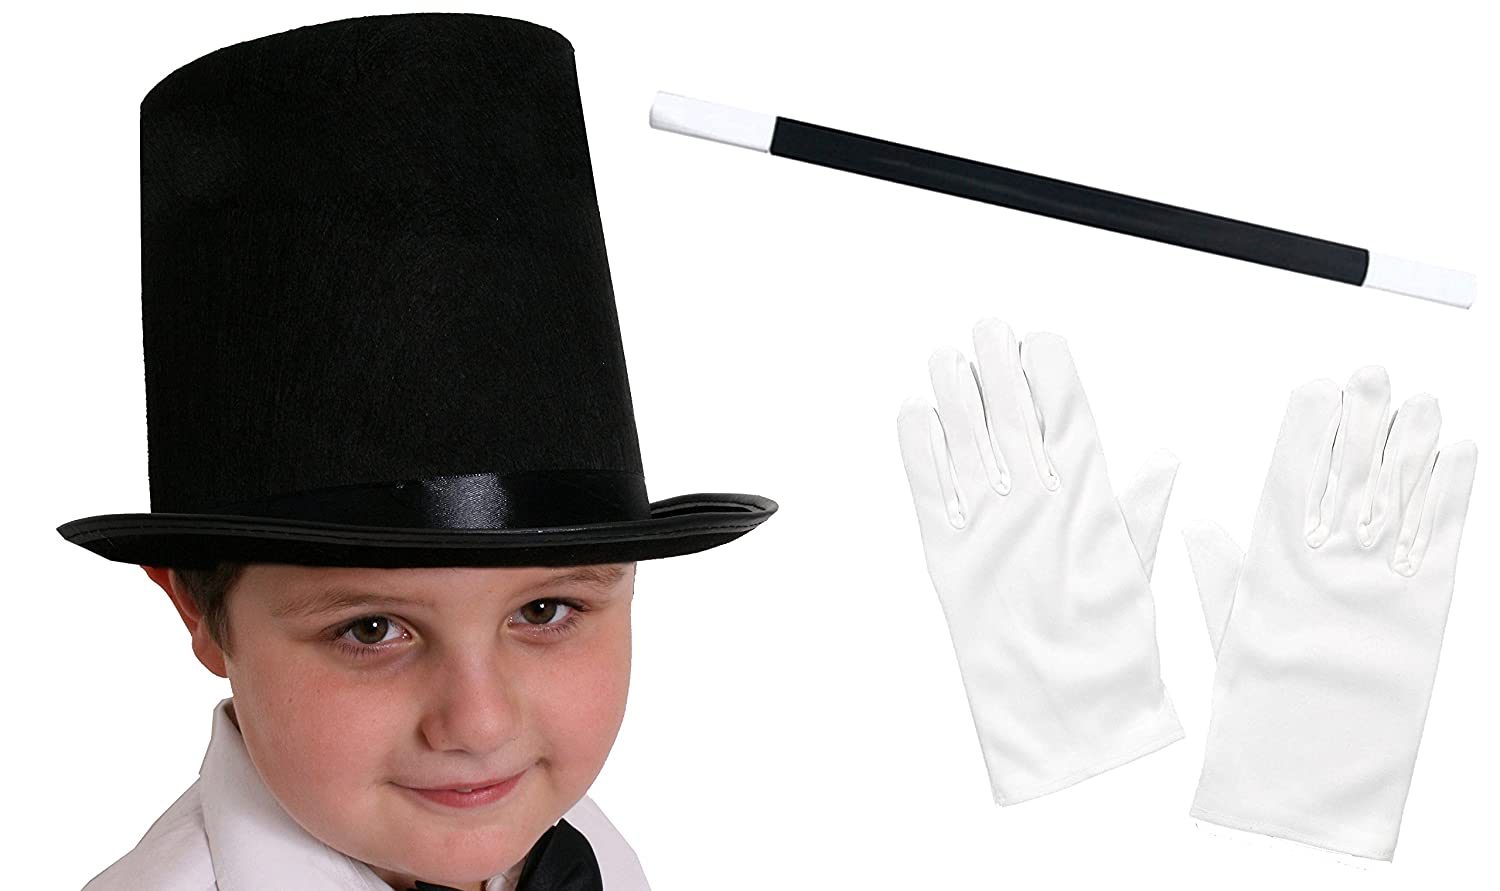 ILOVEFANCYDRESS® CHILDS MAGICIAN FANCY DRESS ACCESSORY COSTUME SET BLACK TOP HAT 55CM HEAD + MAGICIANS WAND + WHITE GLOVES KIDS MAGIC SET CHILD3PMAGSET